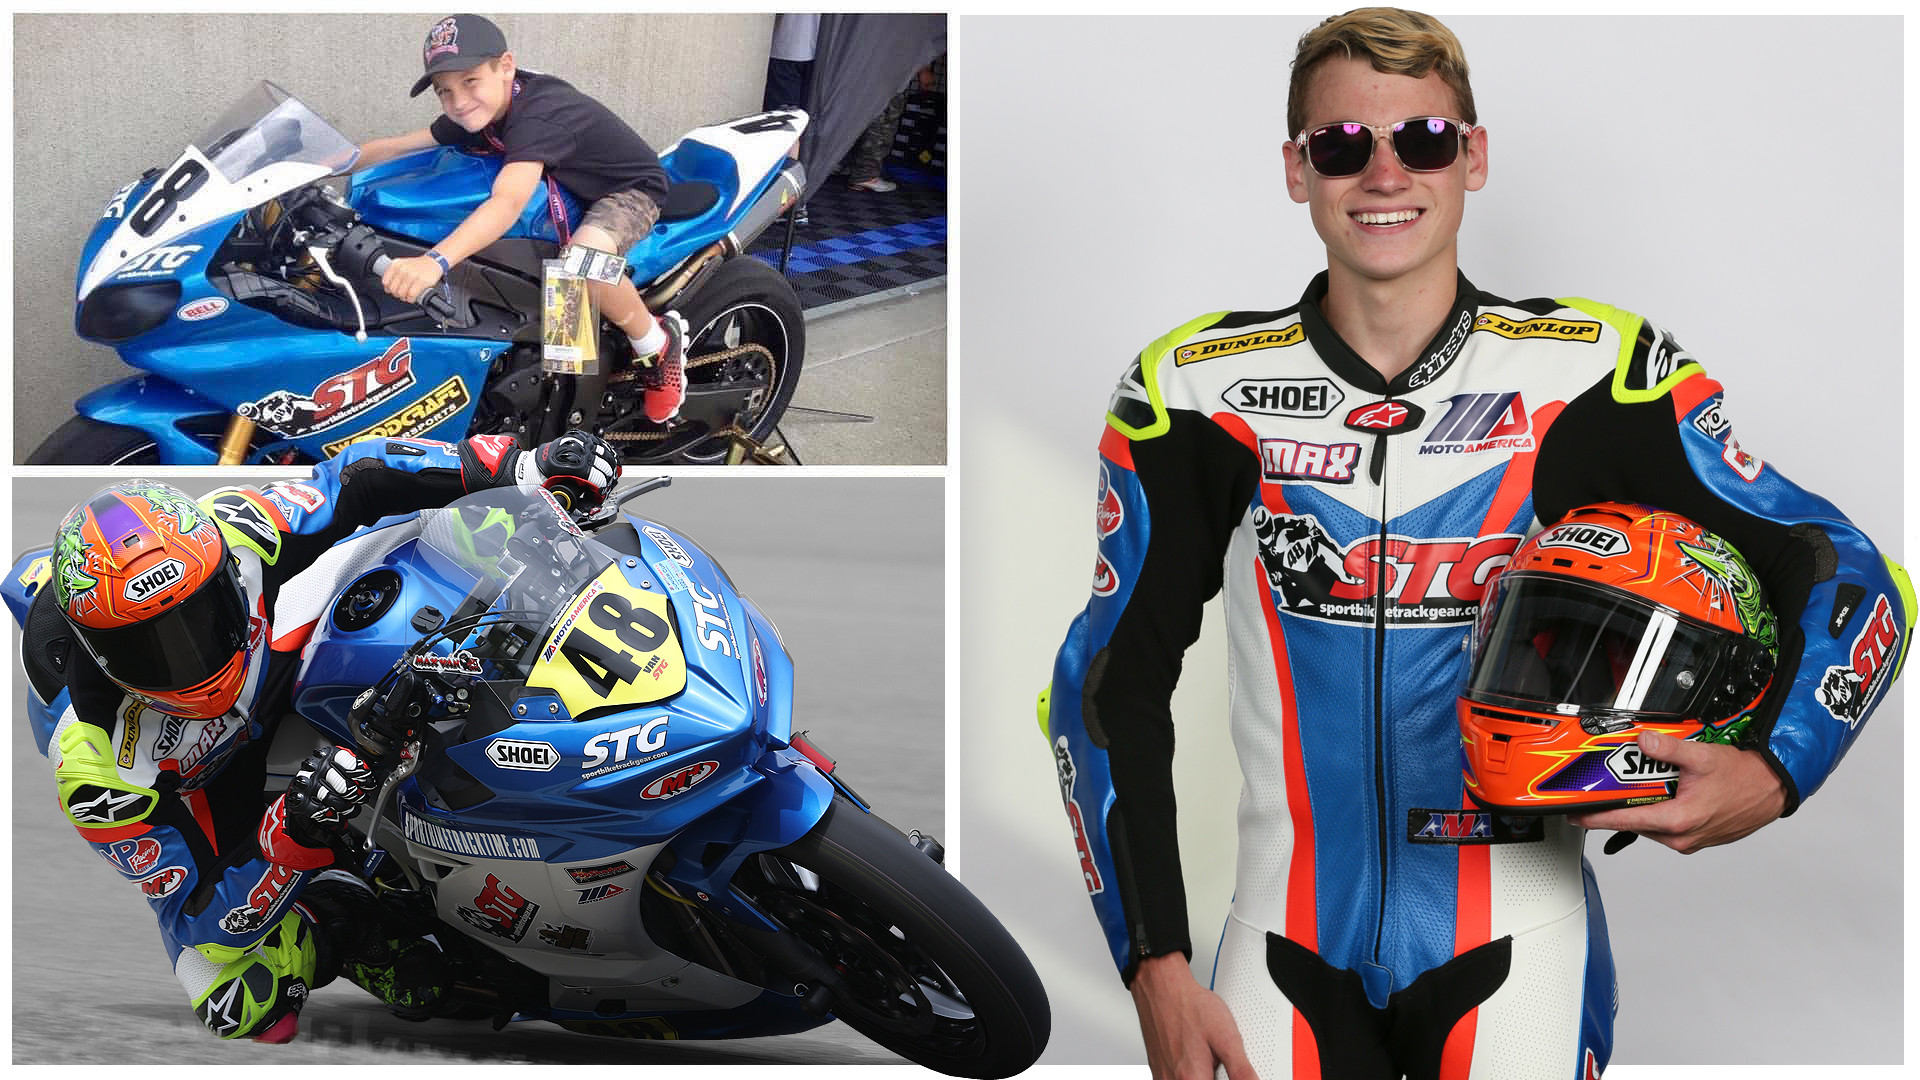 Max Van age 7 at the Red Bull Indianapolis GP in 2013 (top left) and at age 14 during the 2020 MotoAmerica season (bottom left and right). 2020 photos by Brian J. Nelson, courtesy SportbikeTrackGear.com.